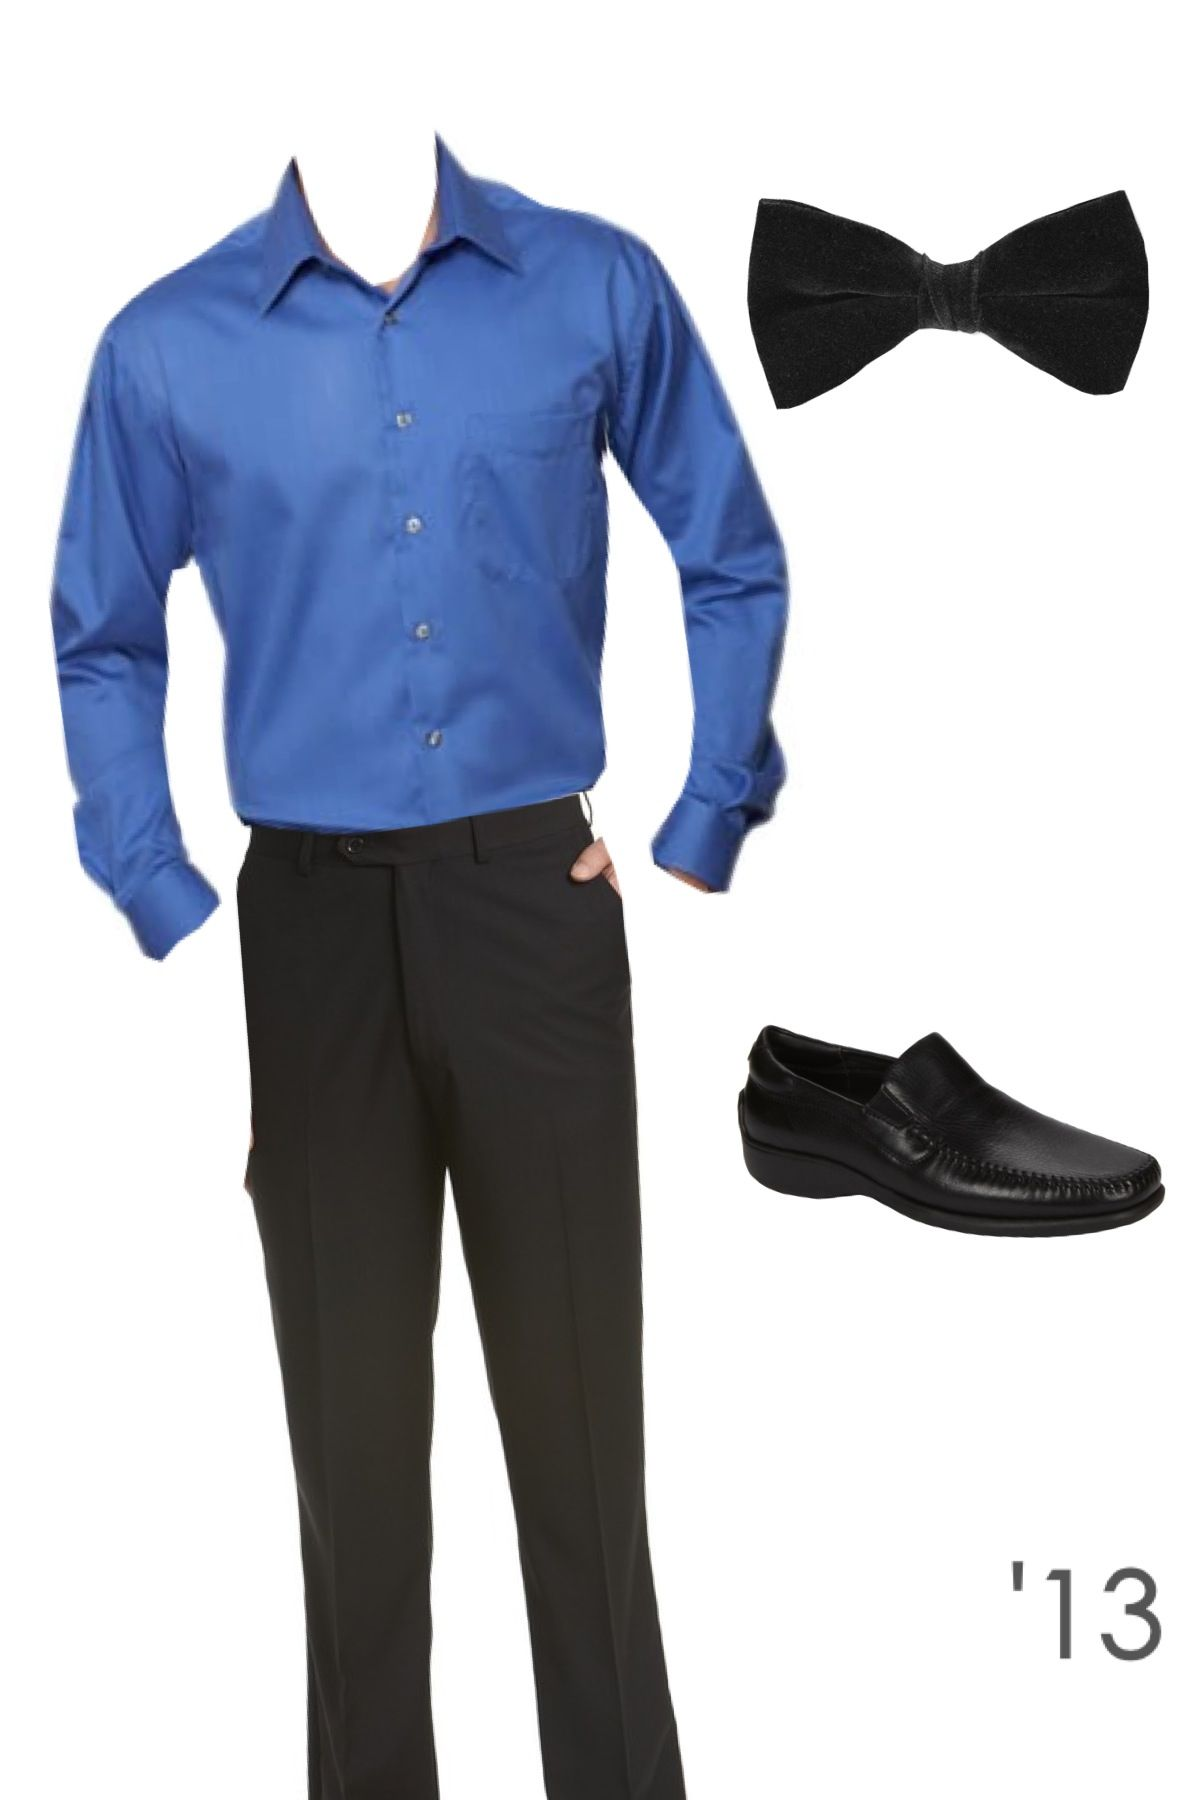 Menu0026#39;s Formal Black Dress Pants Shoes Bow Tie And Blue Collared Dress Shirt. #dapper #neat # ...